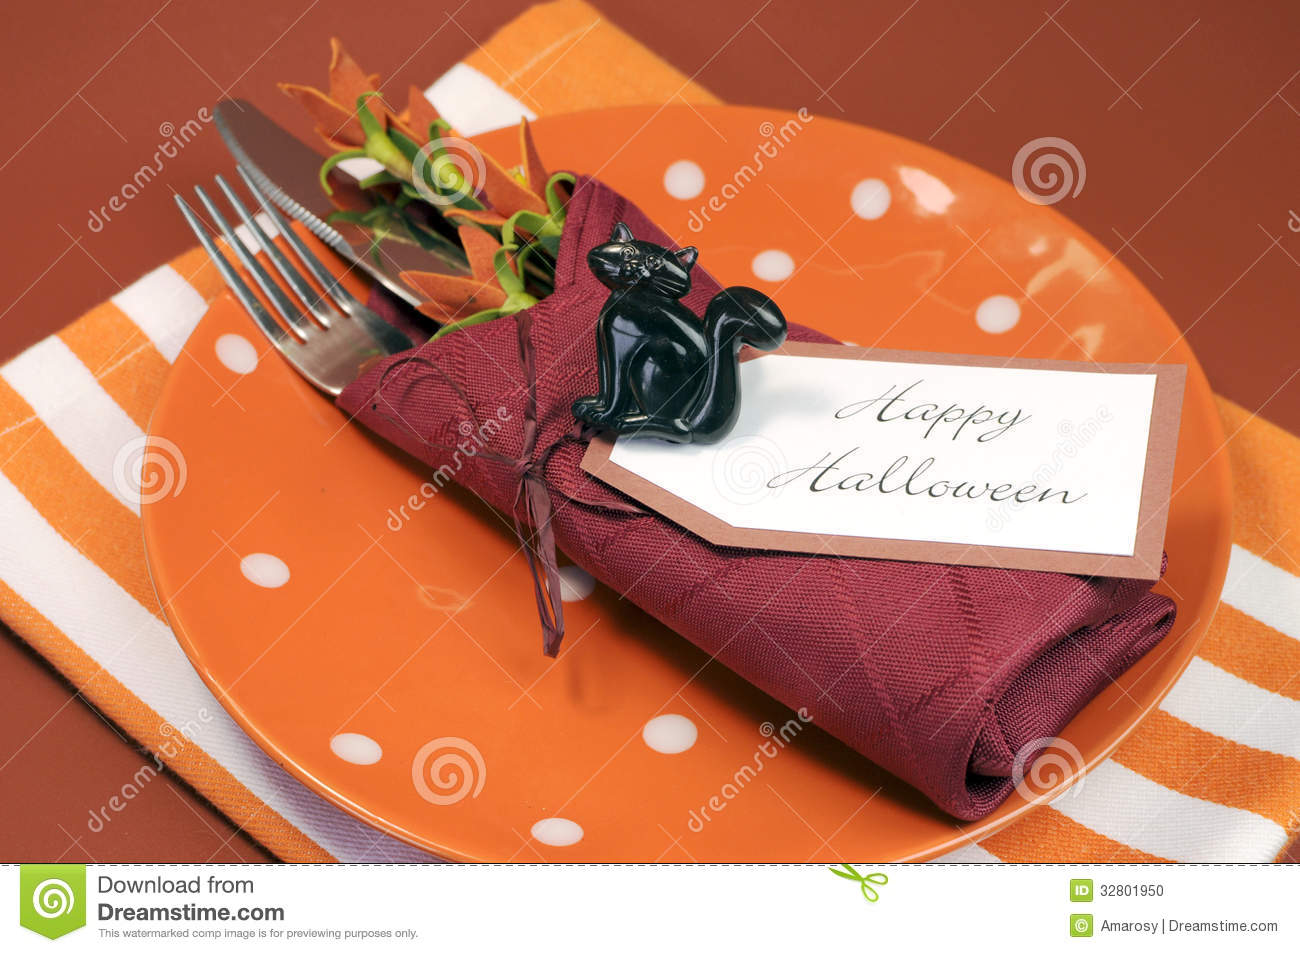 autumn black cat colors dot fall halloween happy napkin orange place plate polka setting - Halloween Place Settings